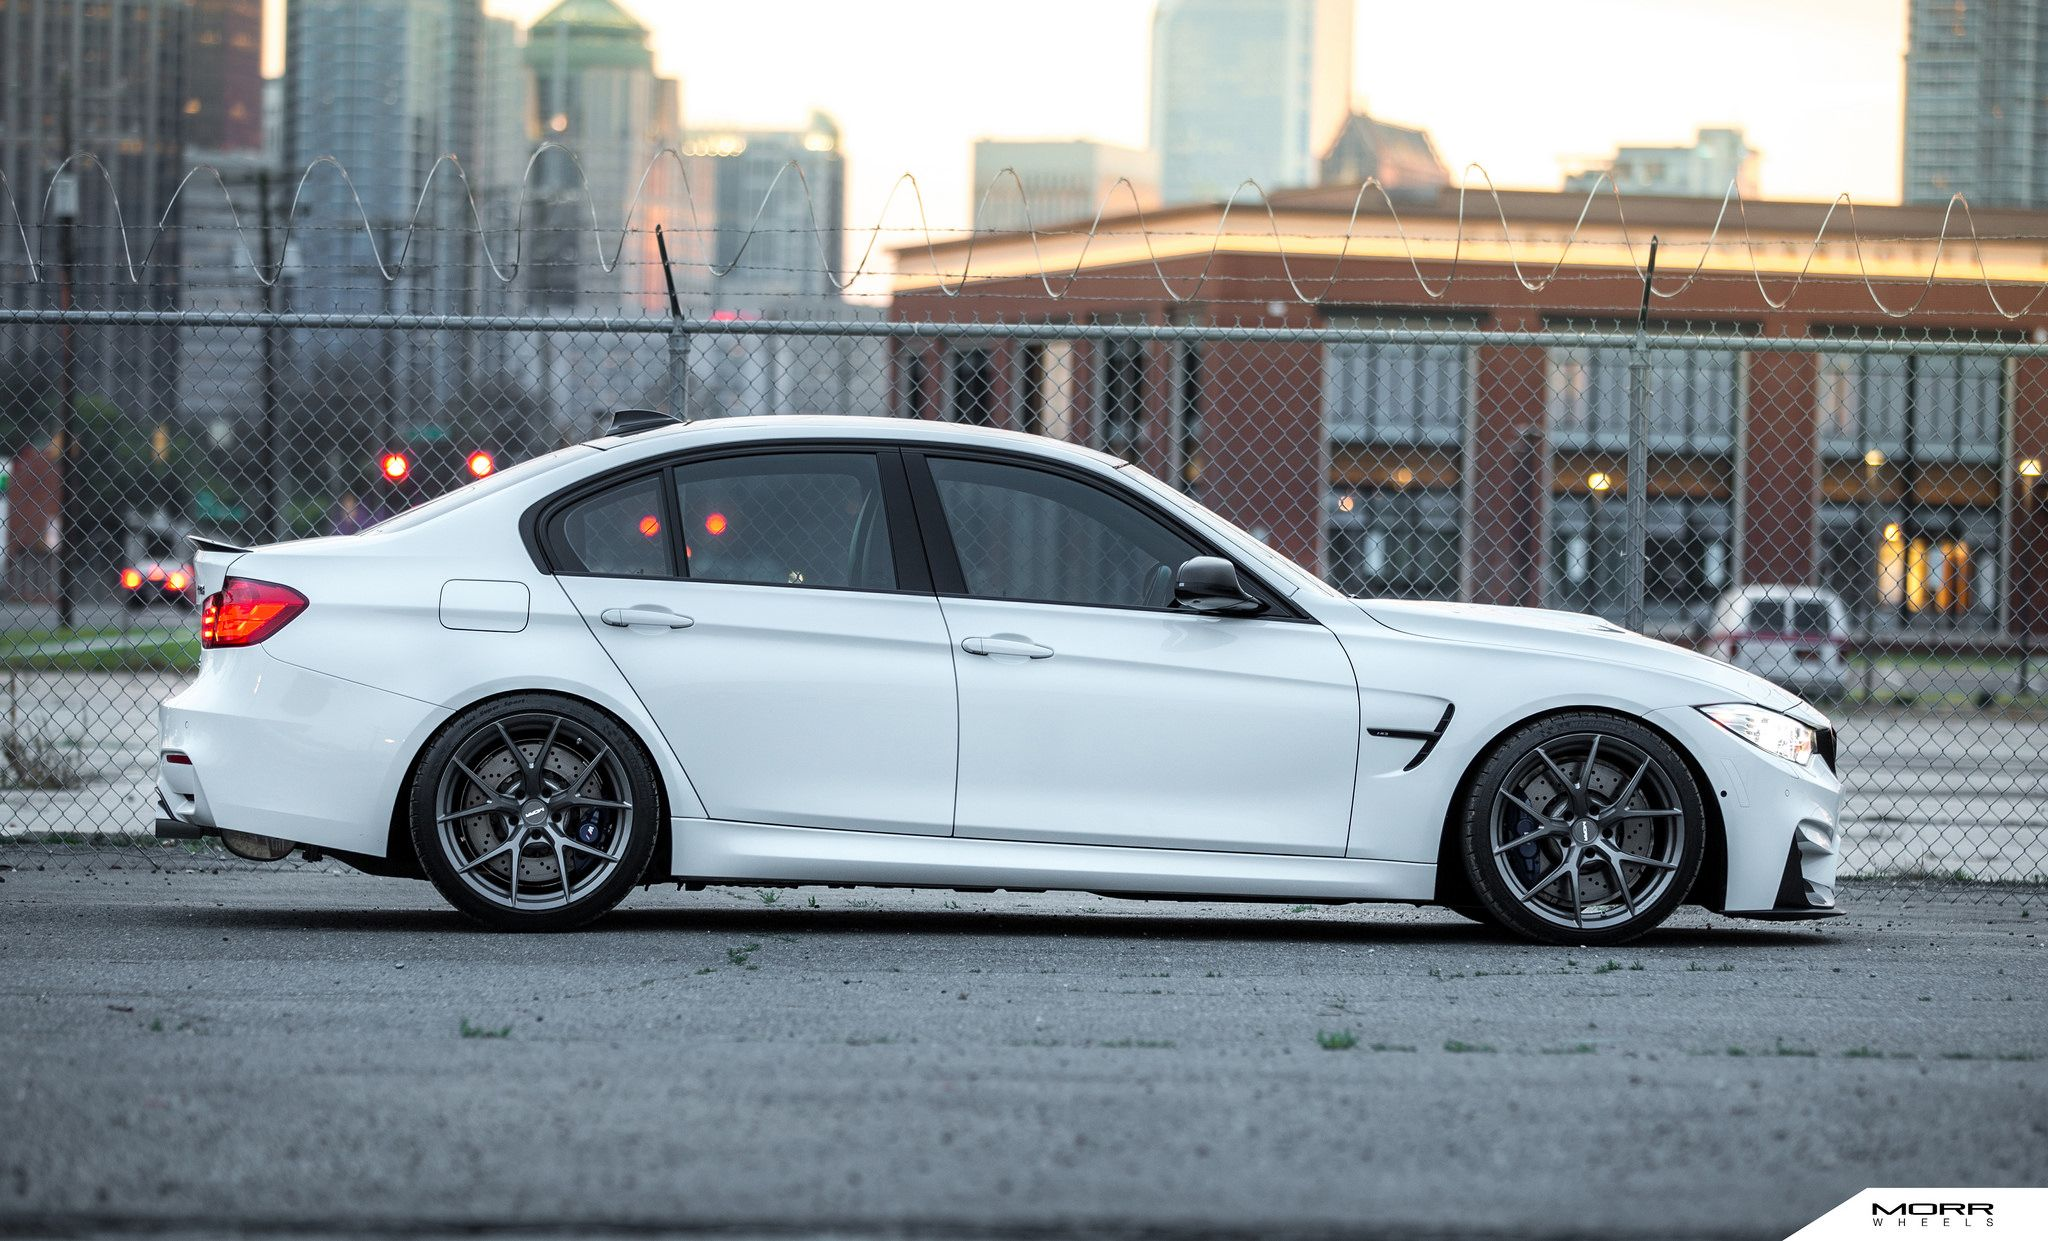 Alpine White Bmw F80 M3 On Morr Wheels With Images Bmw Alpine